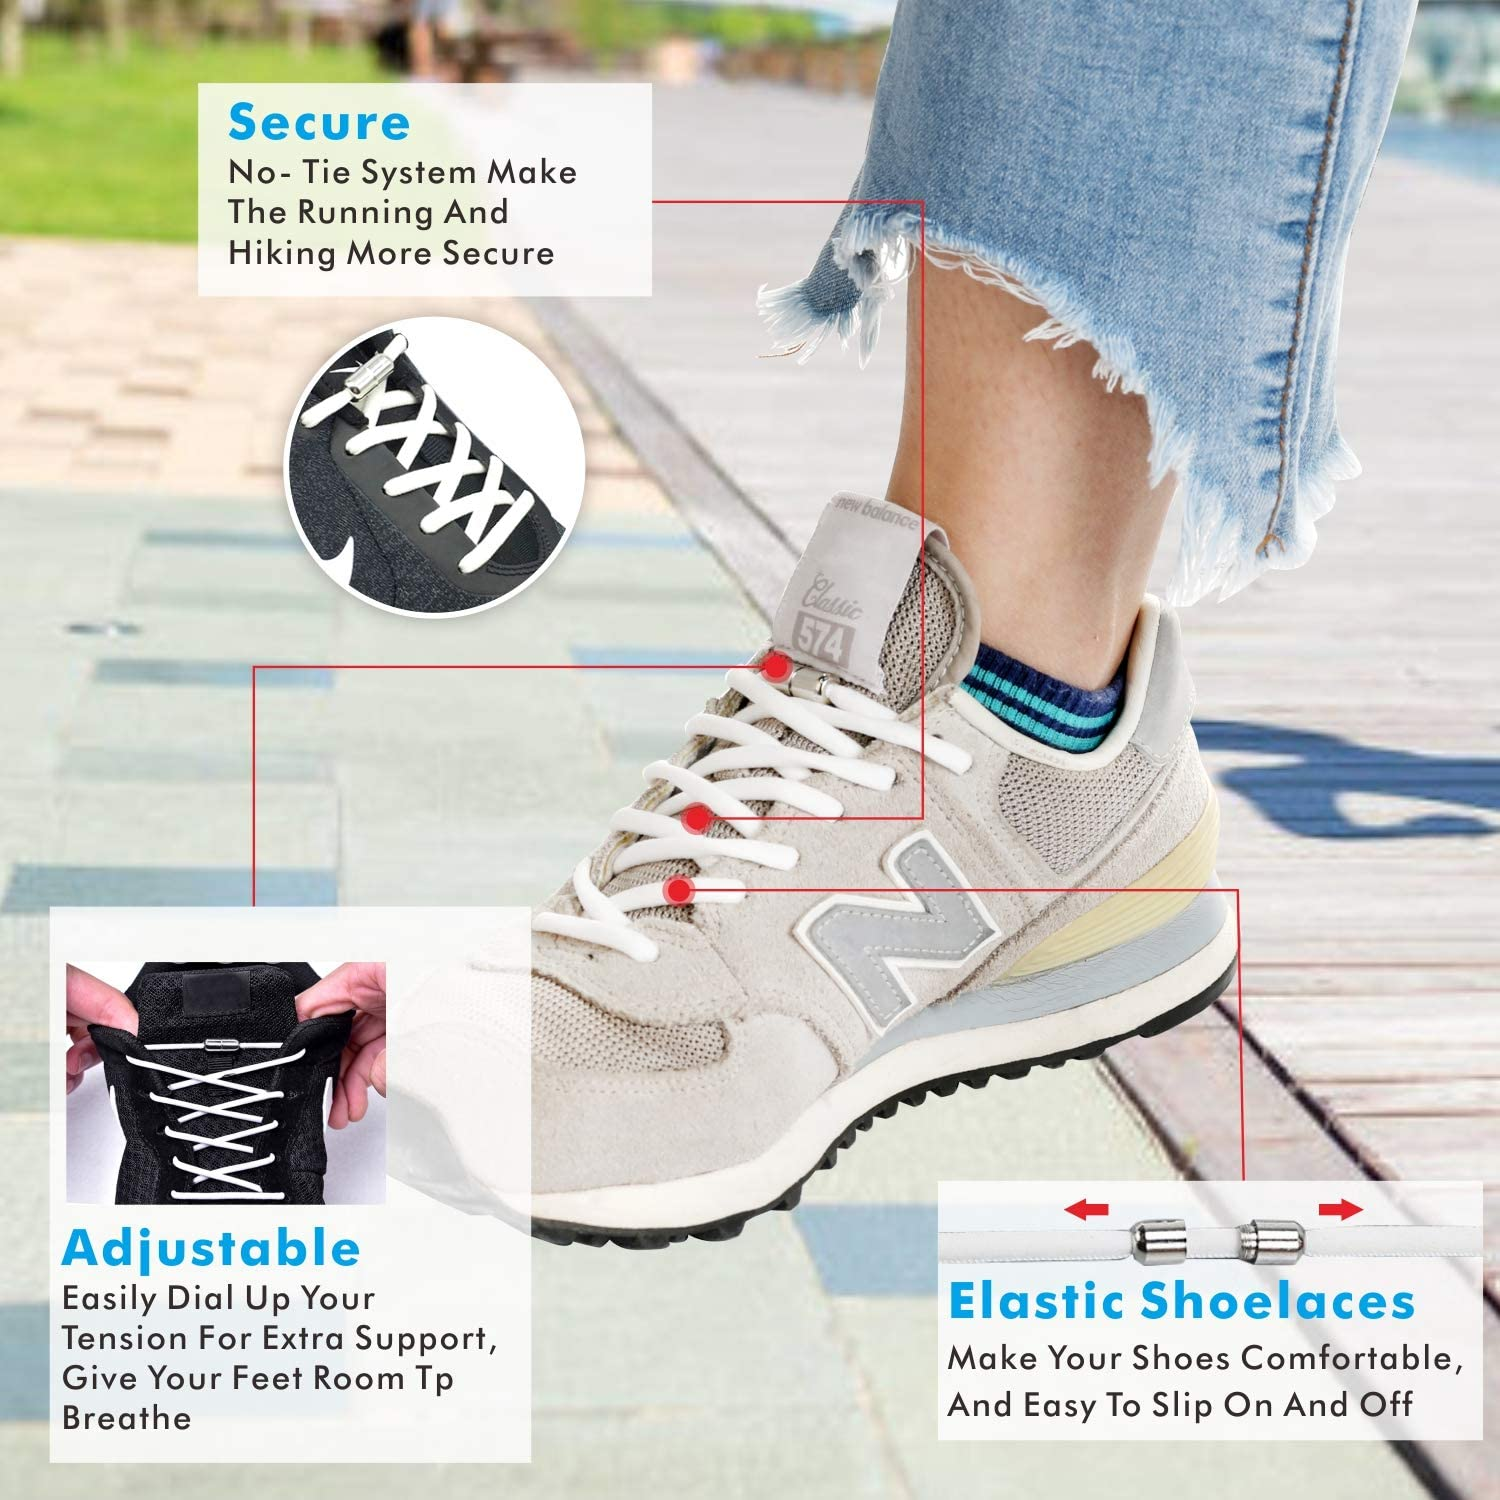 BAPHILE 3 Pairs Elastic No Tie Shoe Laces with 2 Pack Travel Shoe Bags for Adults Kids Elderly Sneakers Casual Shoes